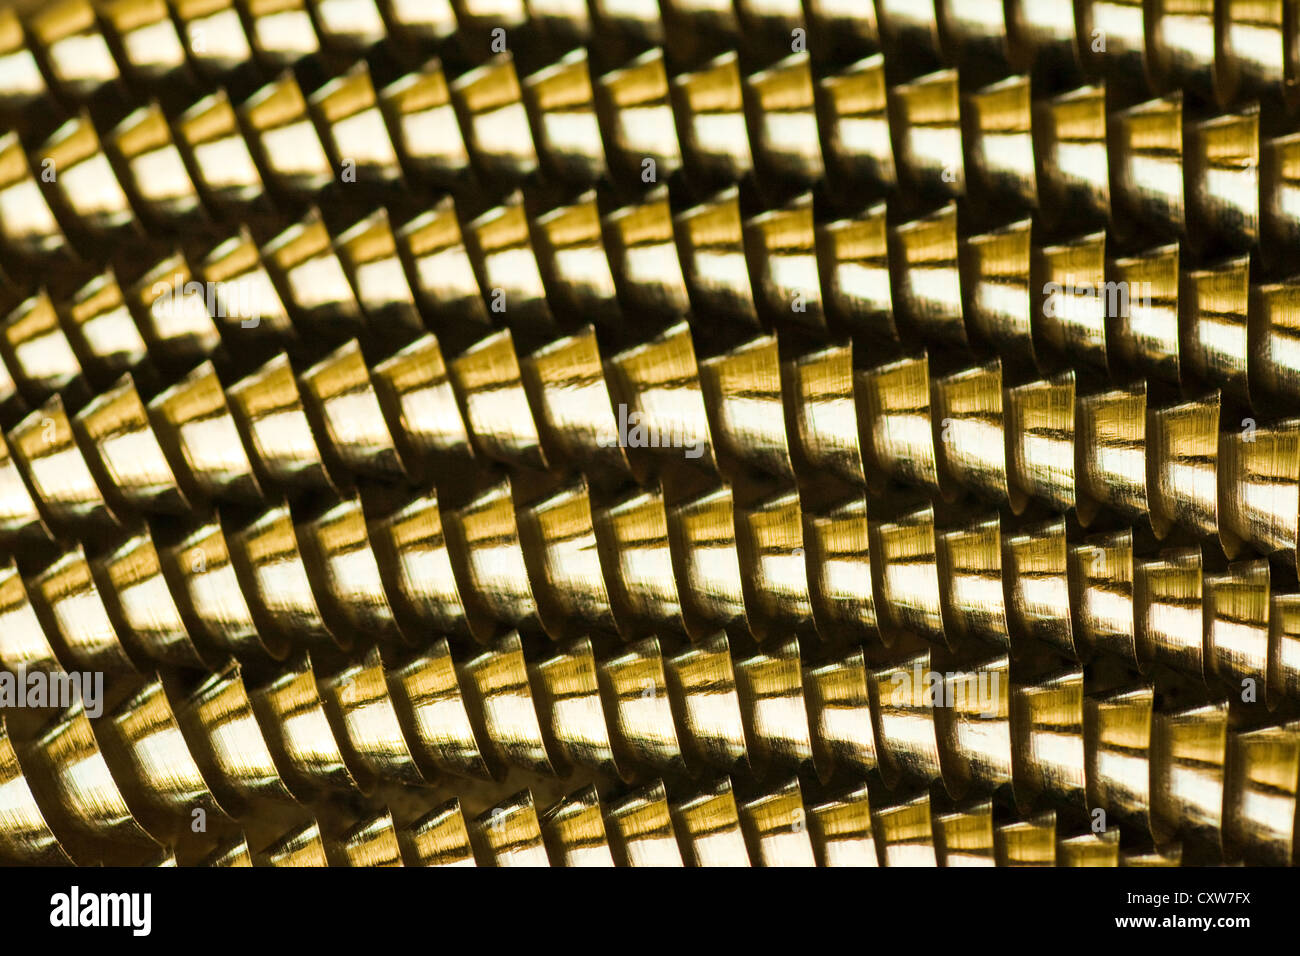 Abstract image of coiled machining swarf from a metal lathe. Number 3 - Stock Image